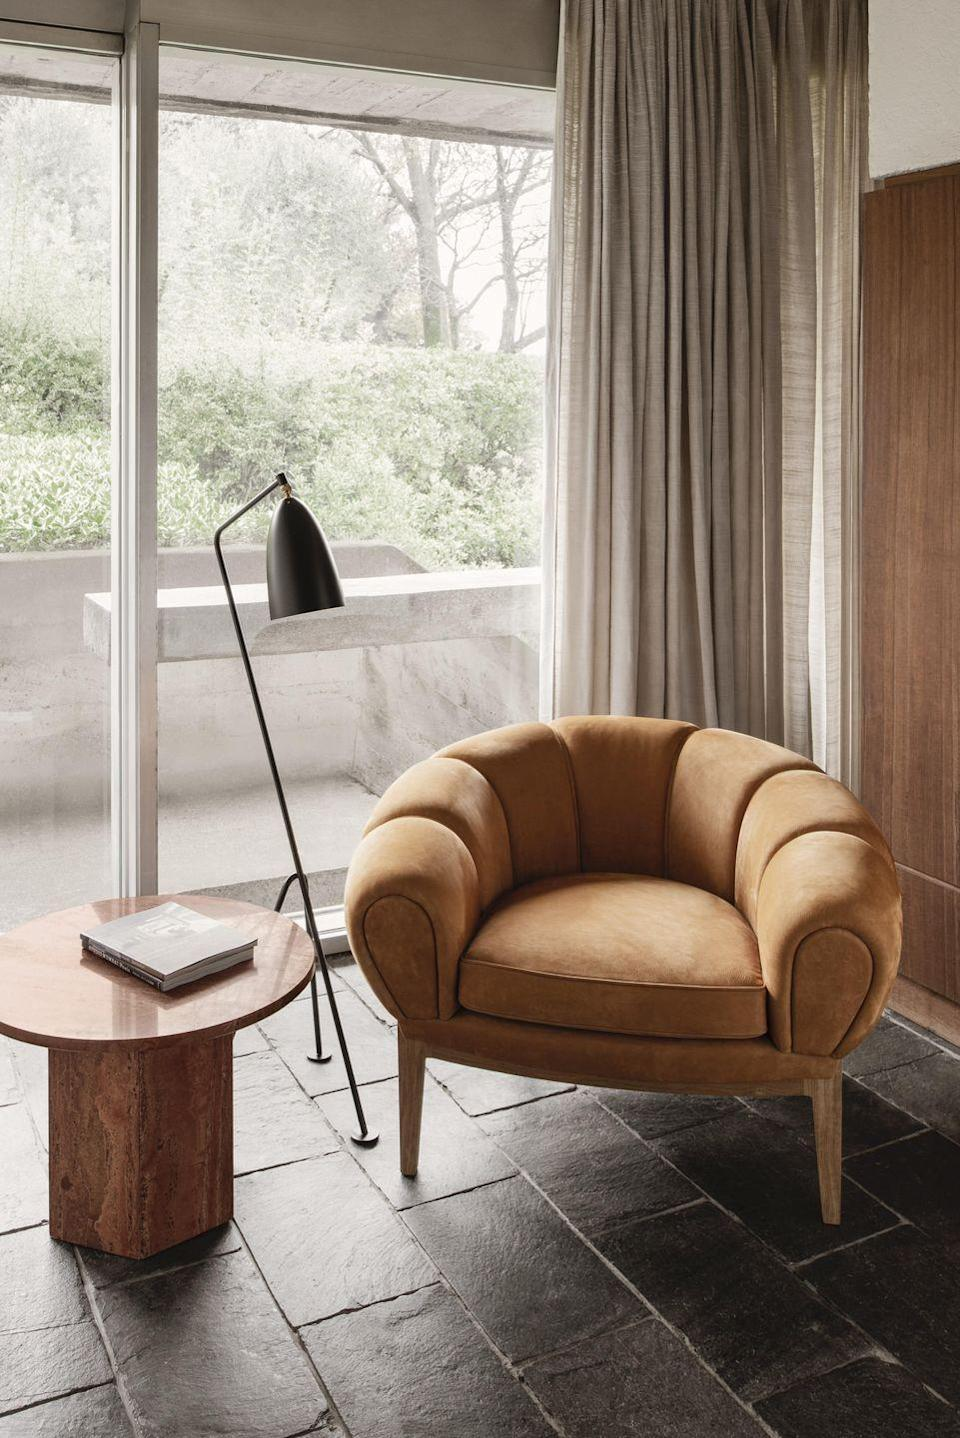 """<p>Created in 1962 and now reissued by Gubi, Wikkelsø's playful 'Croissant chair' (so named for obvious reasons) spoke to his belief that furniture should be comfortable from whatever angle you sit or lie on it. The design's exaggerated, generously padded form fits perfectly with today's fascination for curvy, chunky pieces, as does its decidedly 70s palette. From £2,794, <a href=""""https://chaplins.co.uk/"""" rel=""""nofollow noopener"""" target=""""_blank"""" data-ylk=""""slk:chaplins.co.uk"""" class=""""link rapid-noclick-resp"""">chaplins.co.uk</a></p>"""